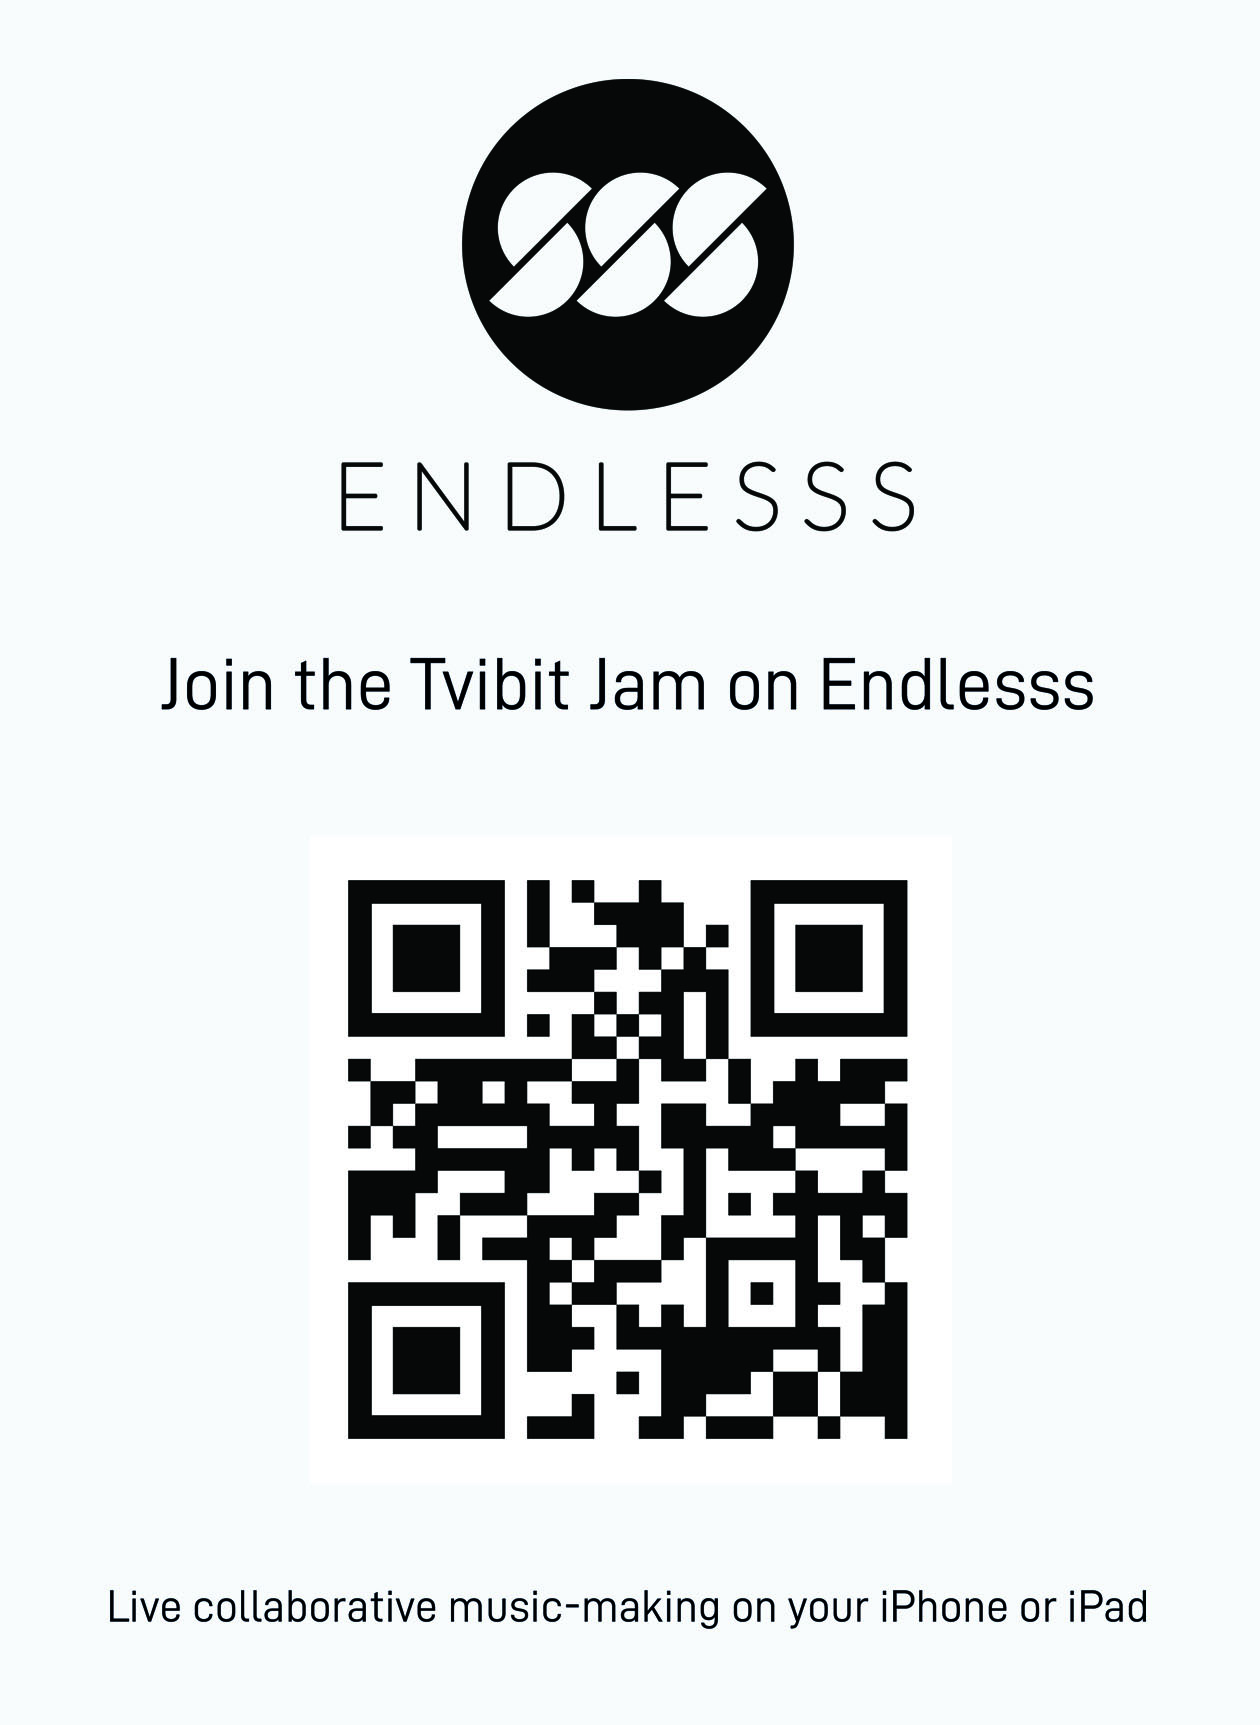 Scan the QR code to download the Endlesss app and meet the development team at Proto 2019.